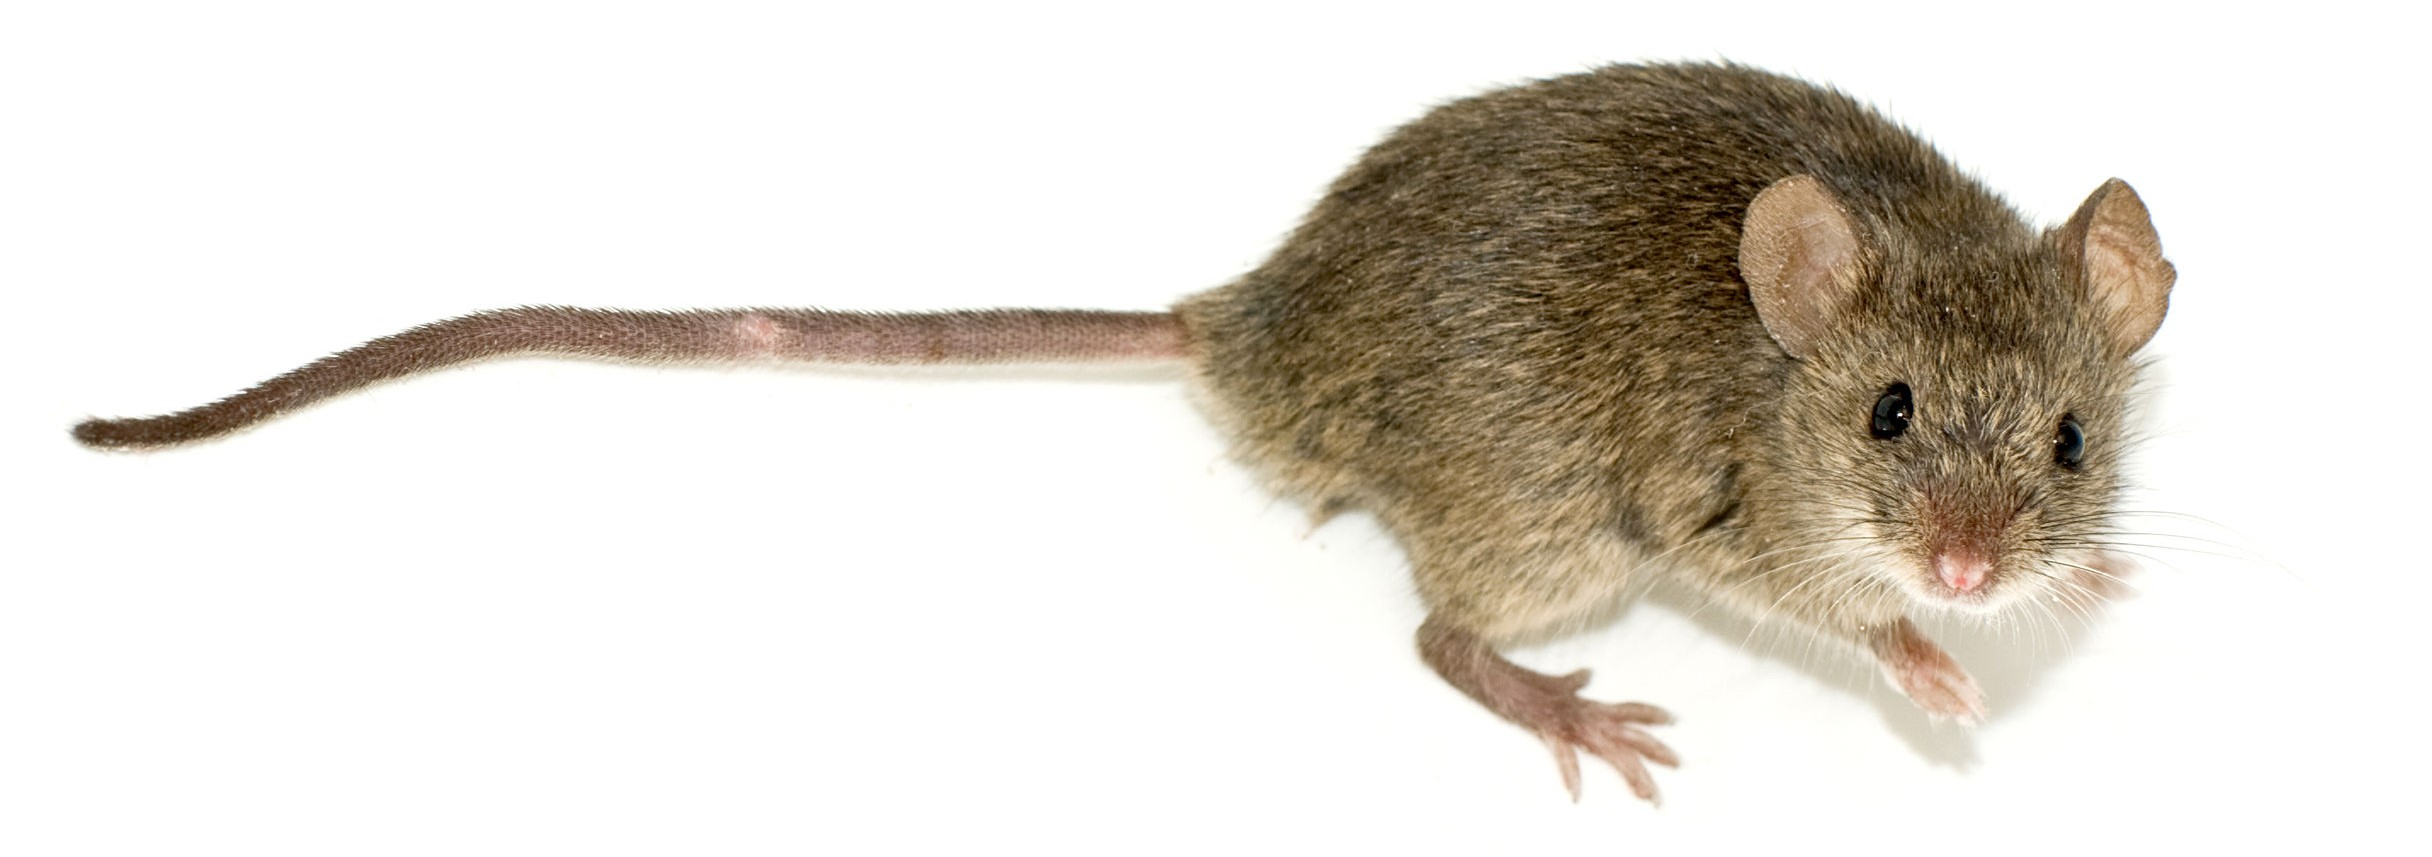 photo of a mouse